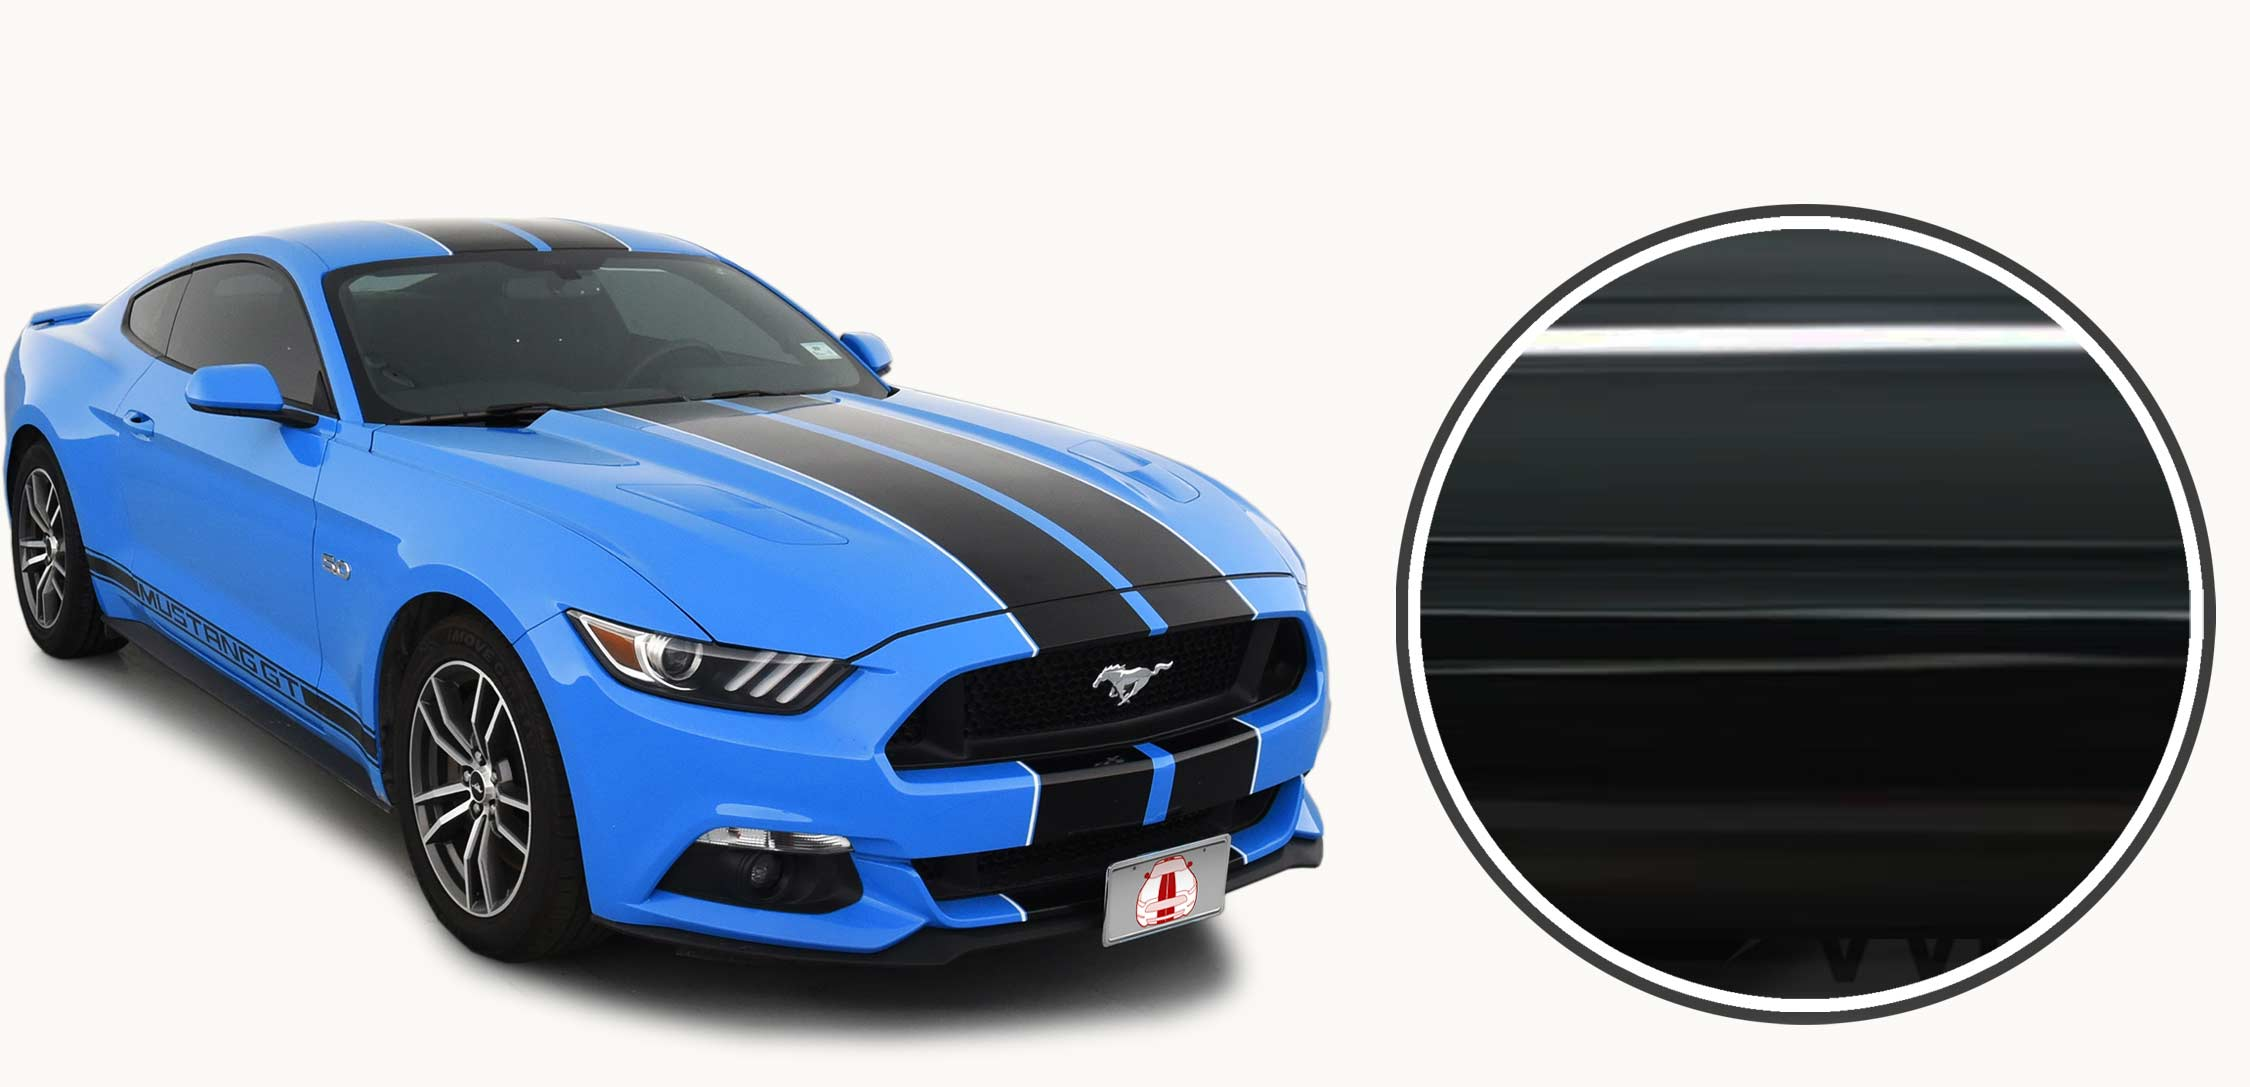 Glossy black racing stripes on a blue ford mustang with white pinstriping